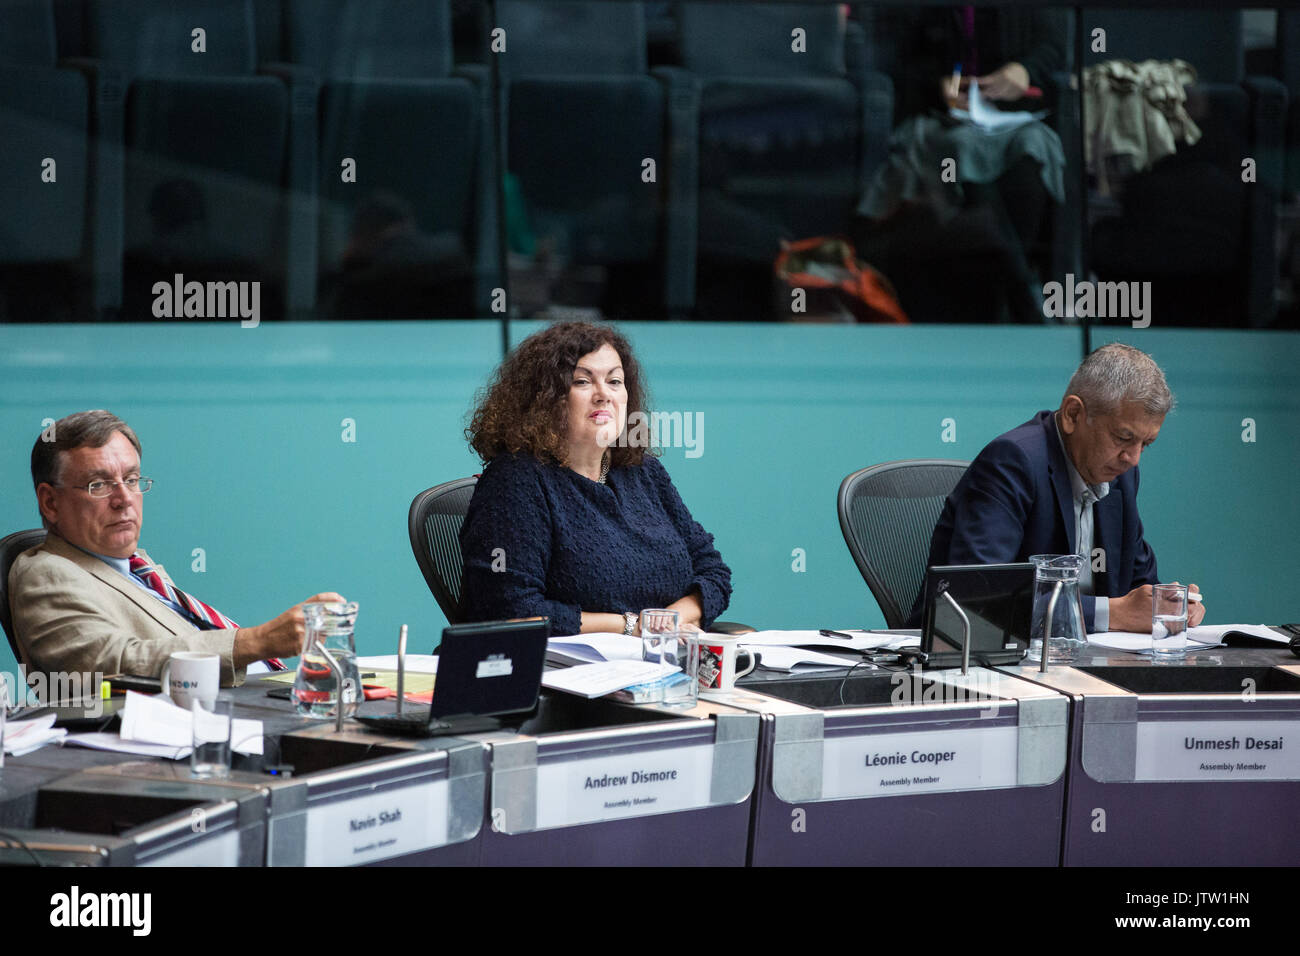 London, UK. 10th August, 2017. London Assembly Members Andrew Dismore, Leonie Cooper and Unmesh Desai listen to Mayor of London Sadiq Khan responding to questions during Mayor's Question Time at City Hall. Among topics discussed were: acid attacks, social housing, expenditure on fire and police services, 4G coverage on underground trains and noise from overnight underground trains. Credit: Mark Kerrison/Alamy Live News - Stock Image